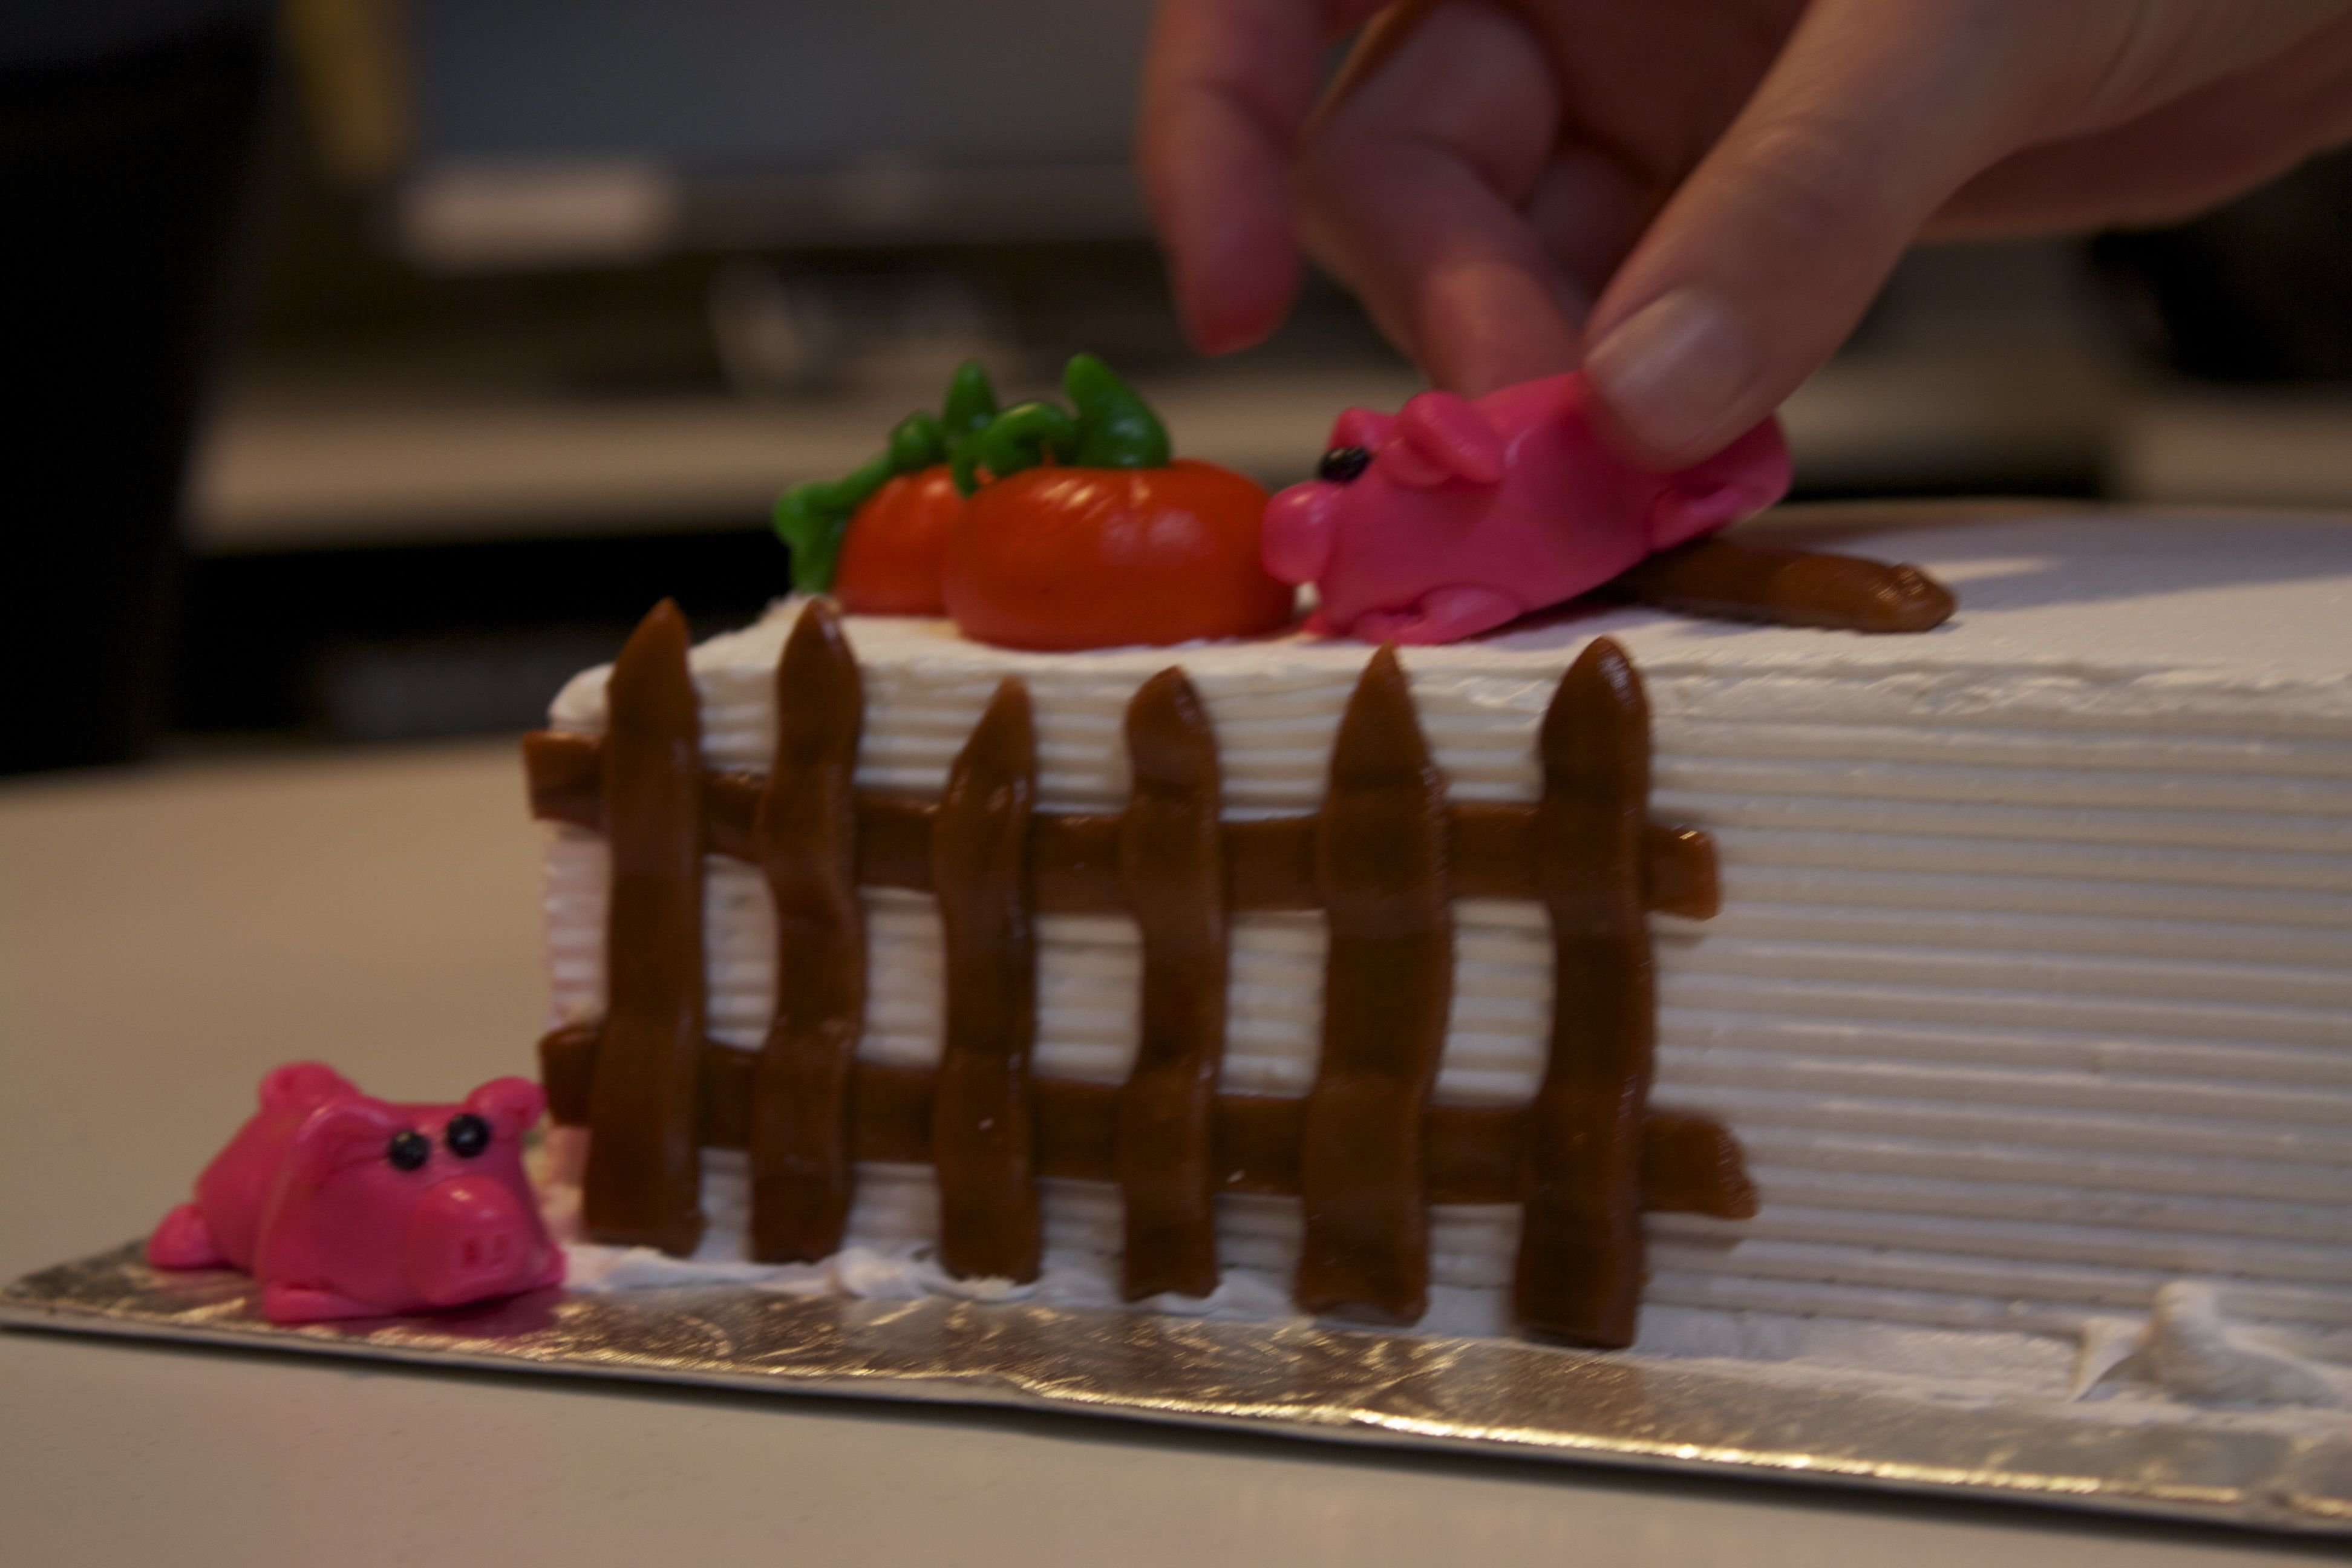 Cake Decorating Shows On Food Network : Cake Decorating for Food Network Canada Life at No. 71